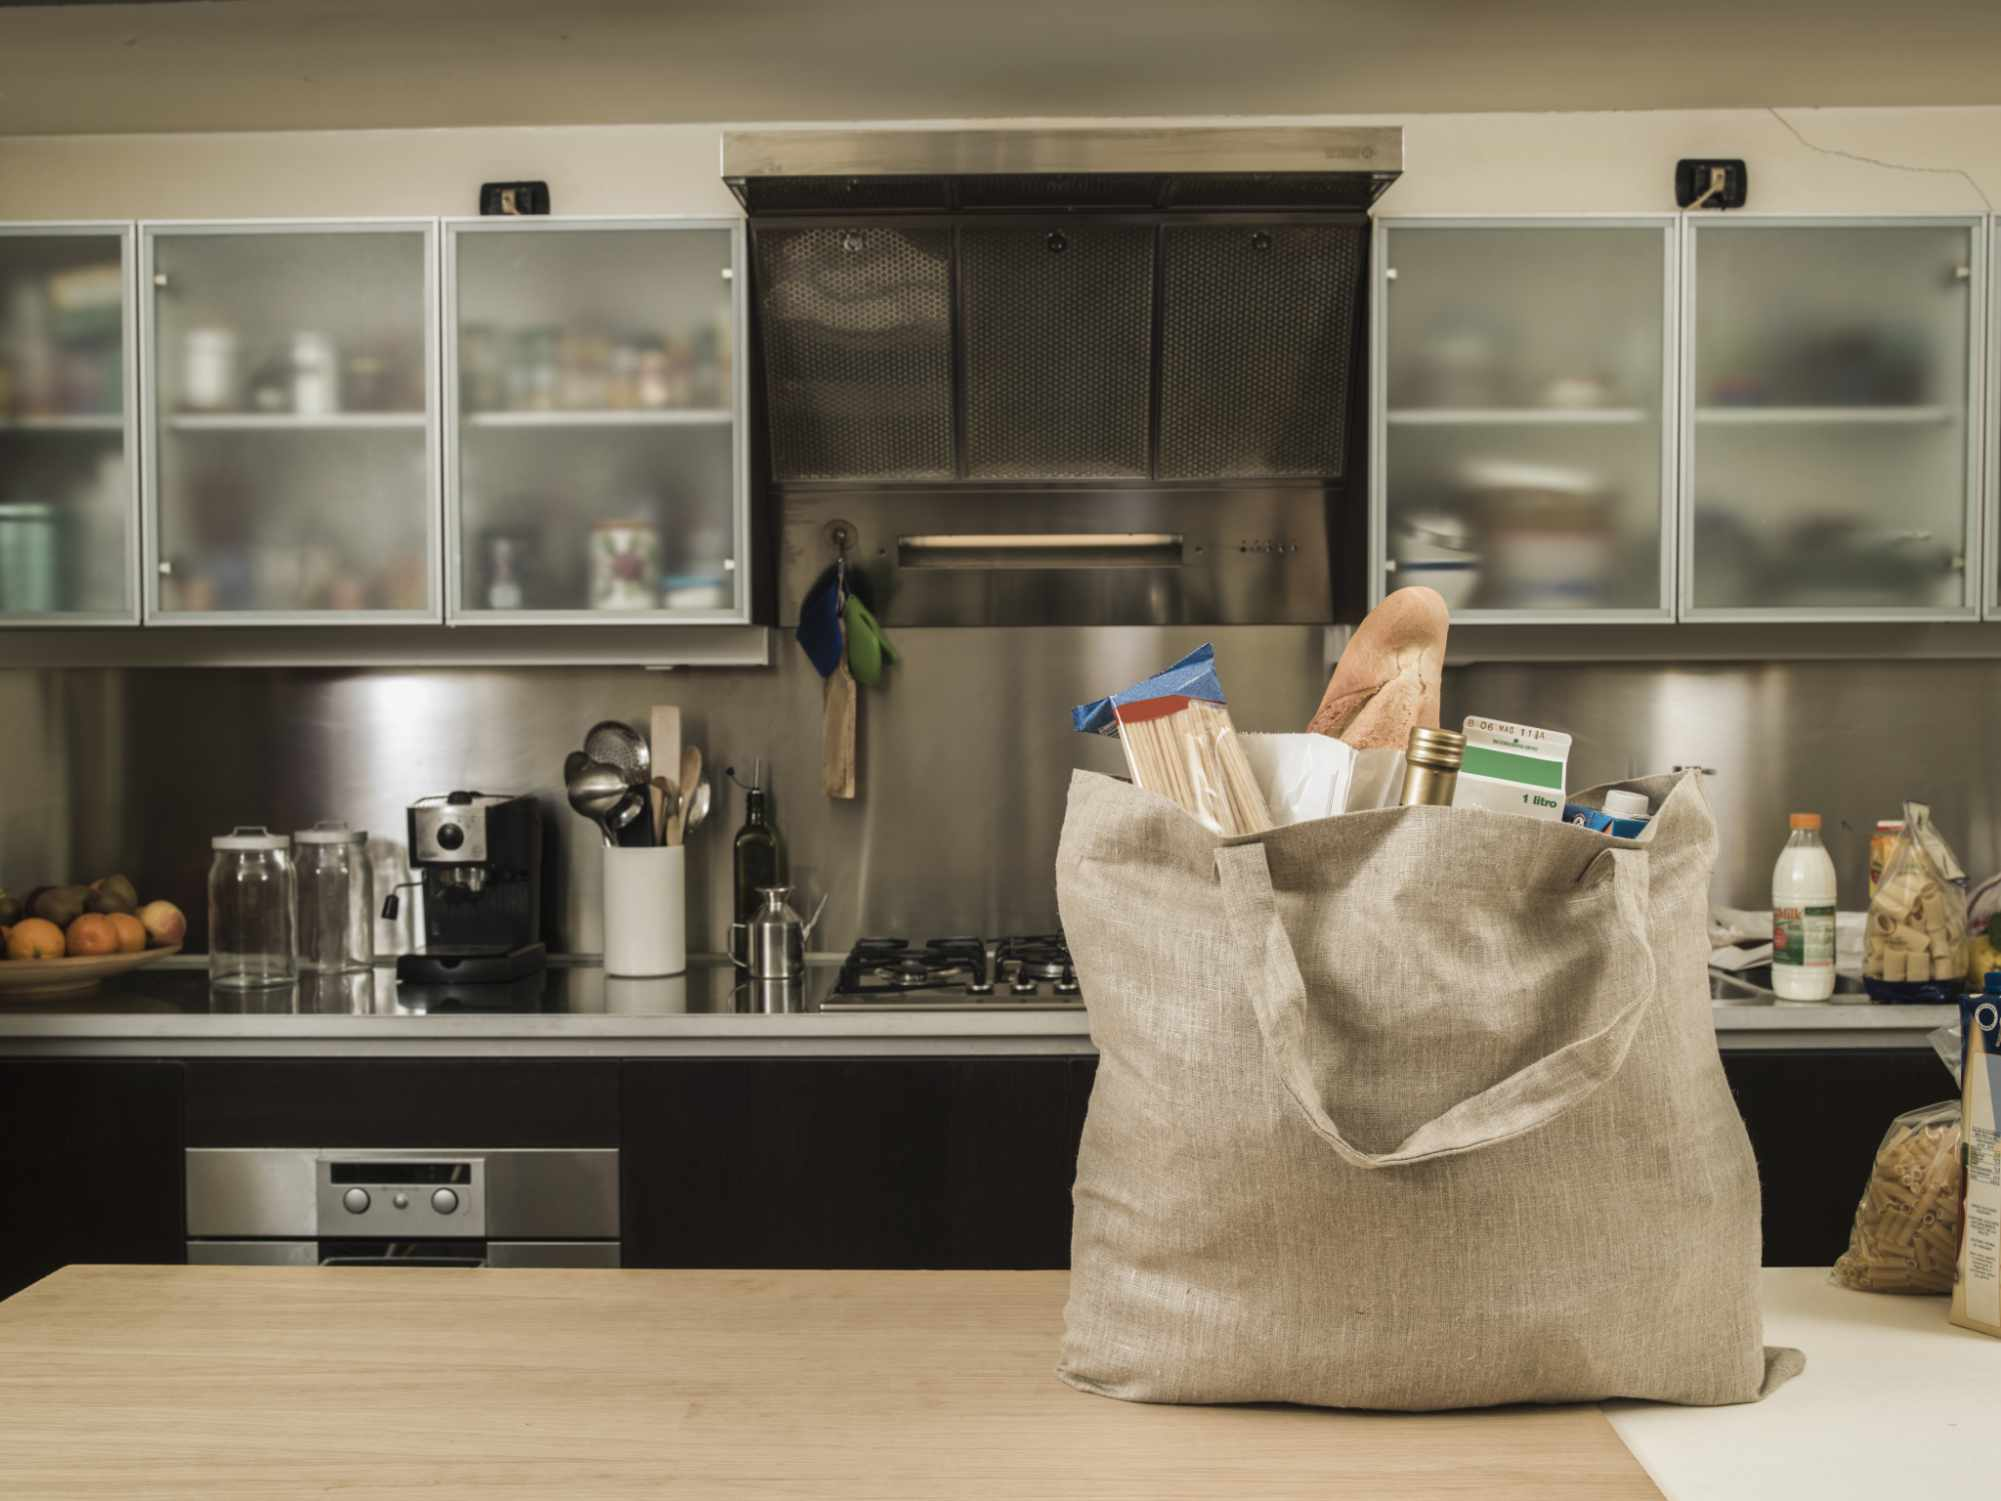 Reusable grocery bags mean less waste and less demand for plastic.